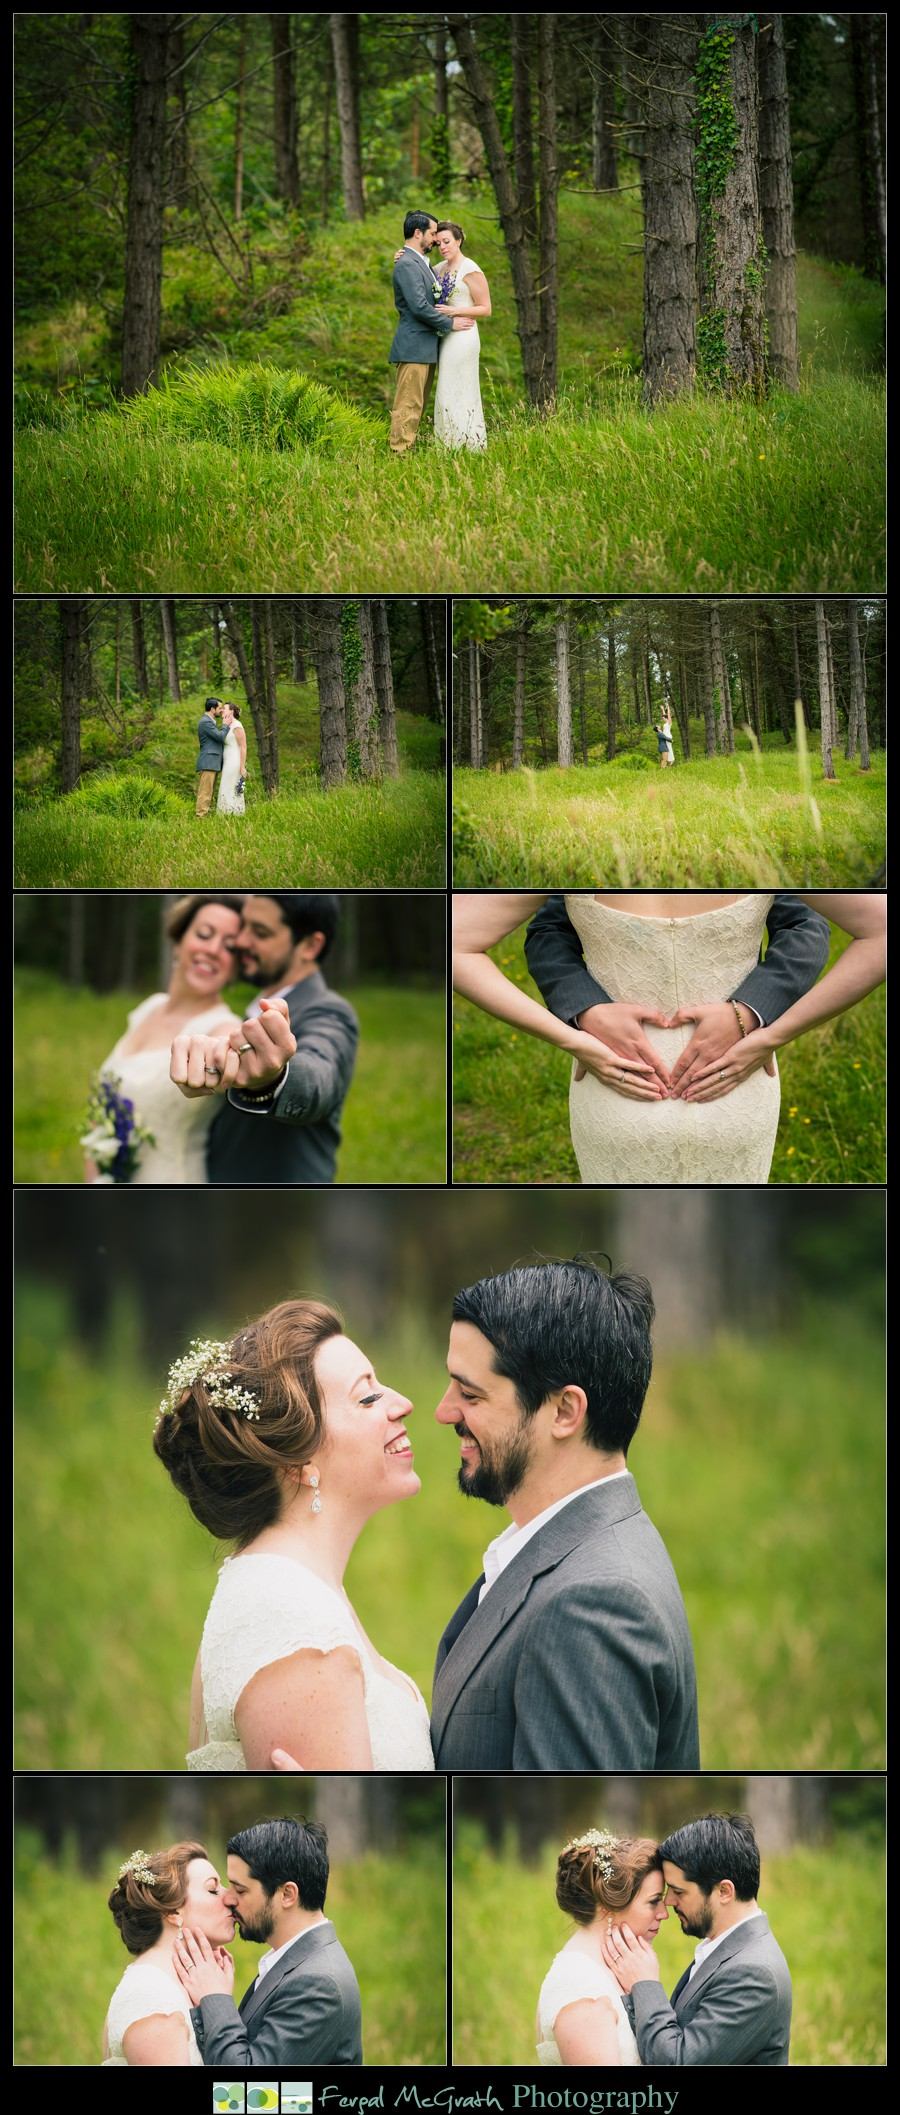 Donegal Wedding Photography bride and groom in a donegal forest